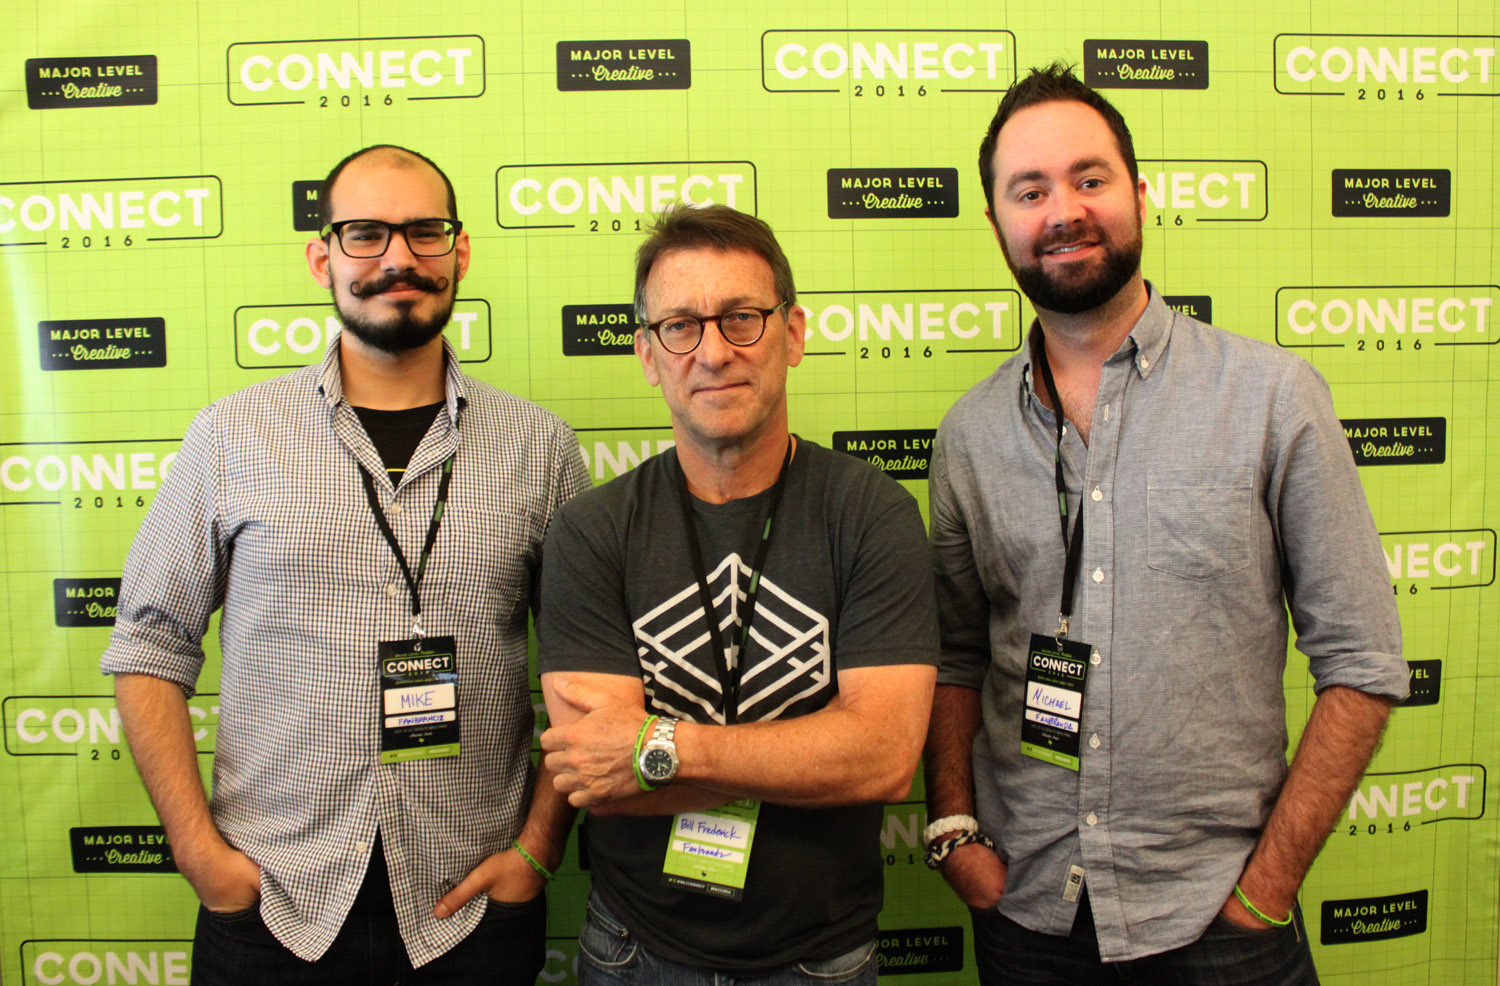 Bill, Mike and Michael at the Major Level Creative Connect Conference, 2016